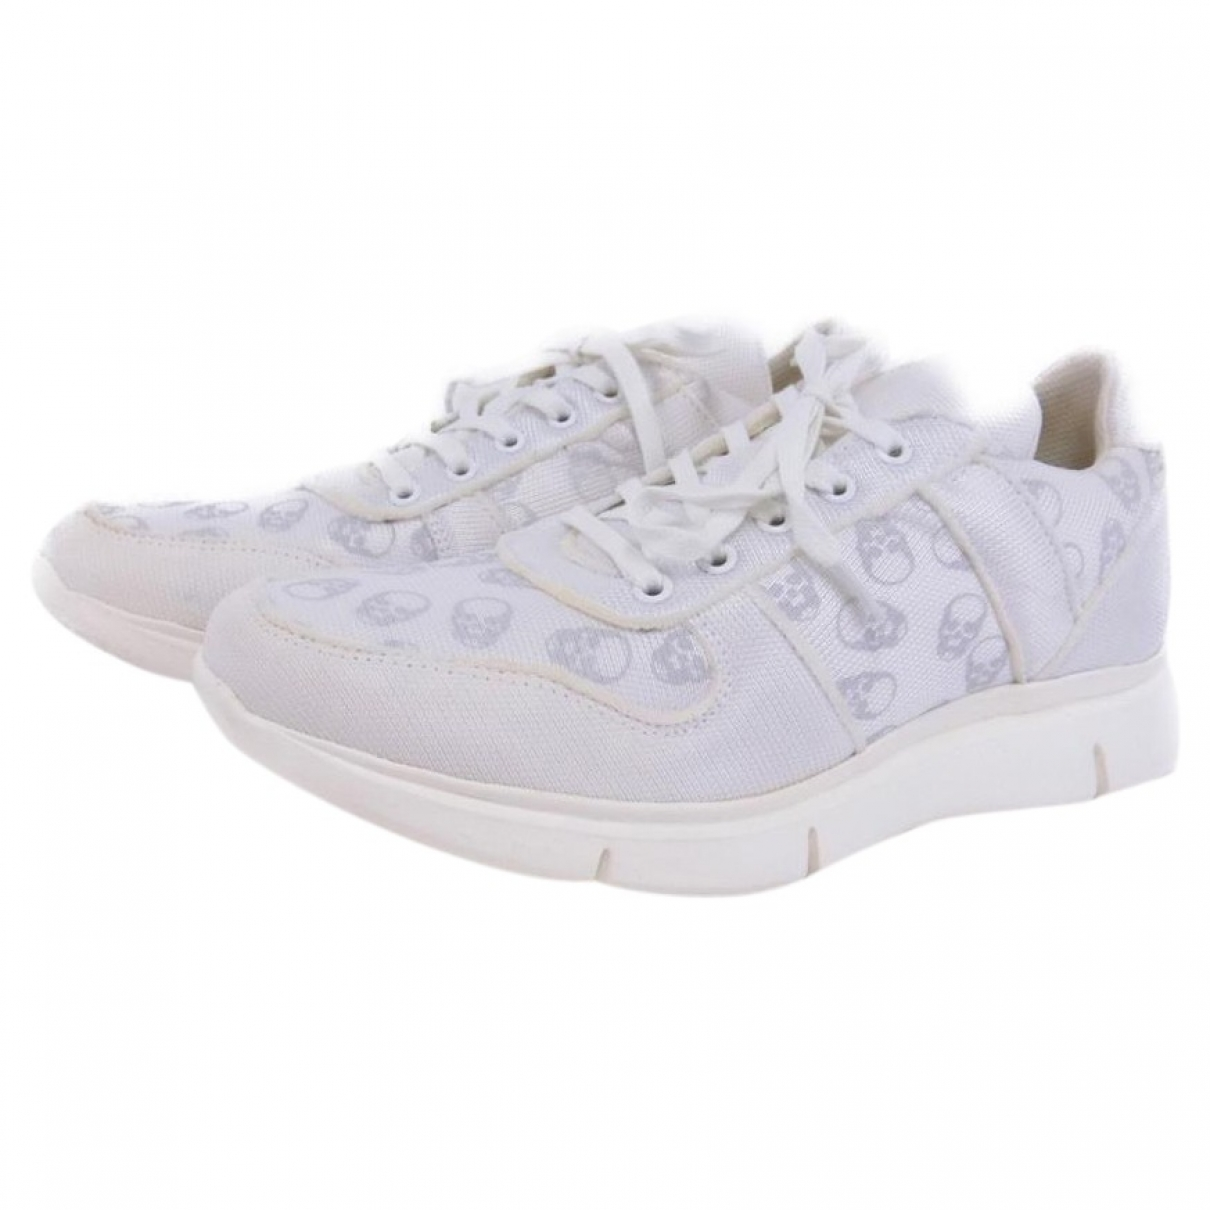 Lucien Pellat Finet \N White Leather Trainers for Men 40 EU